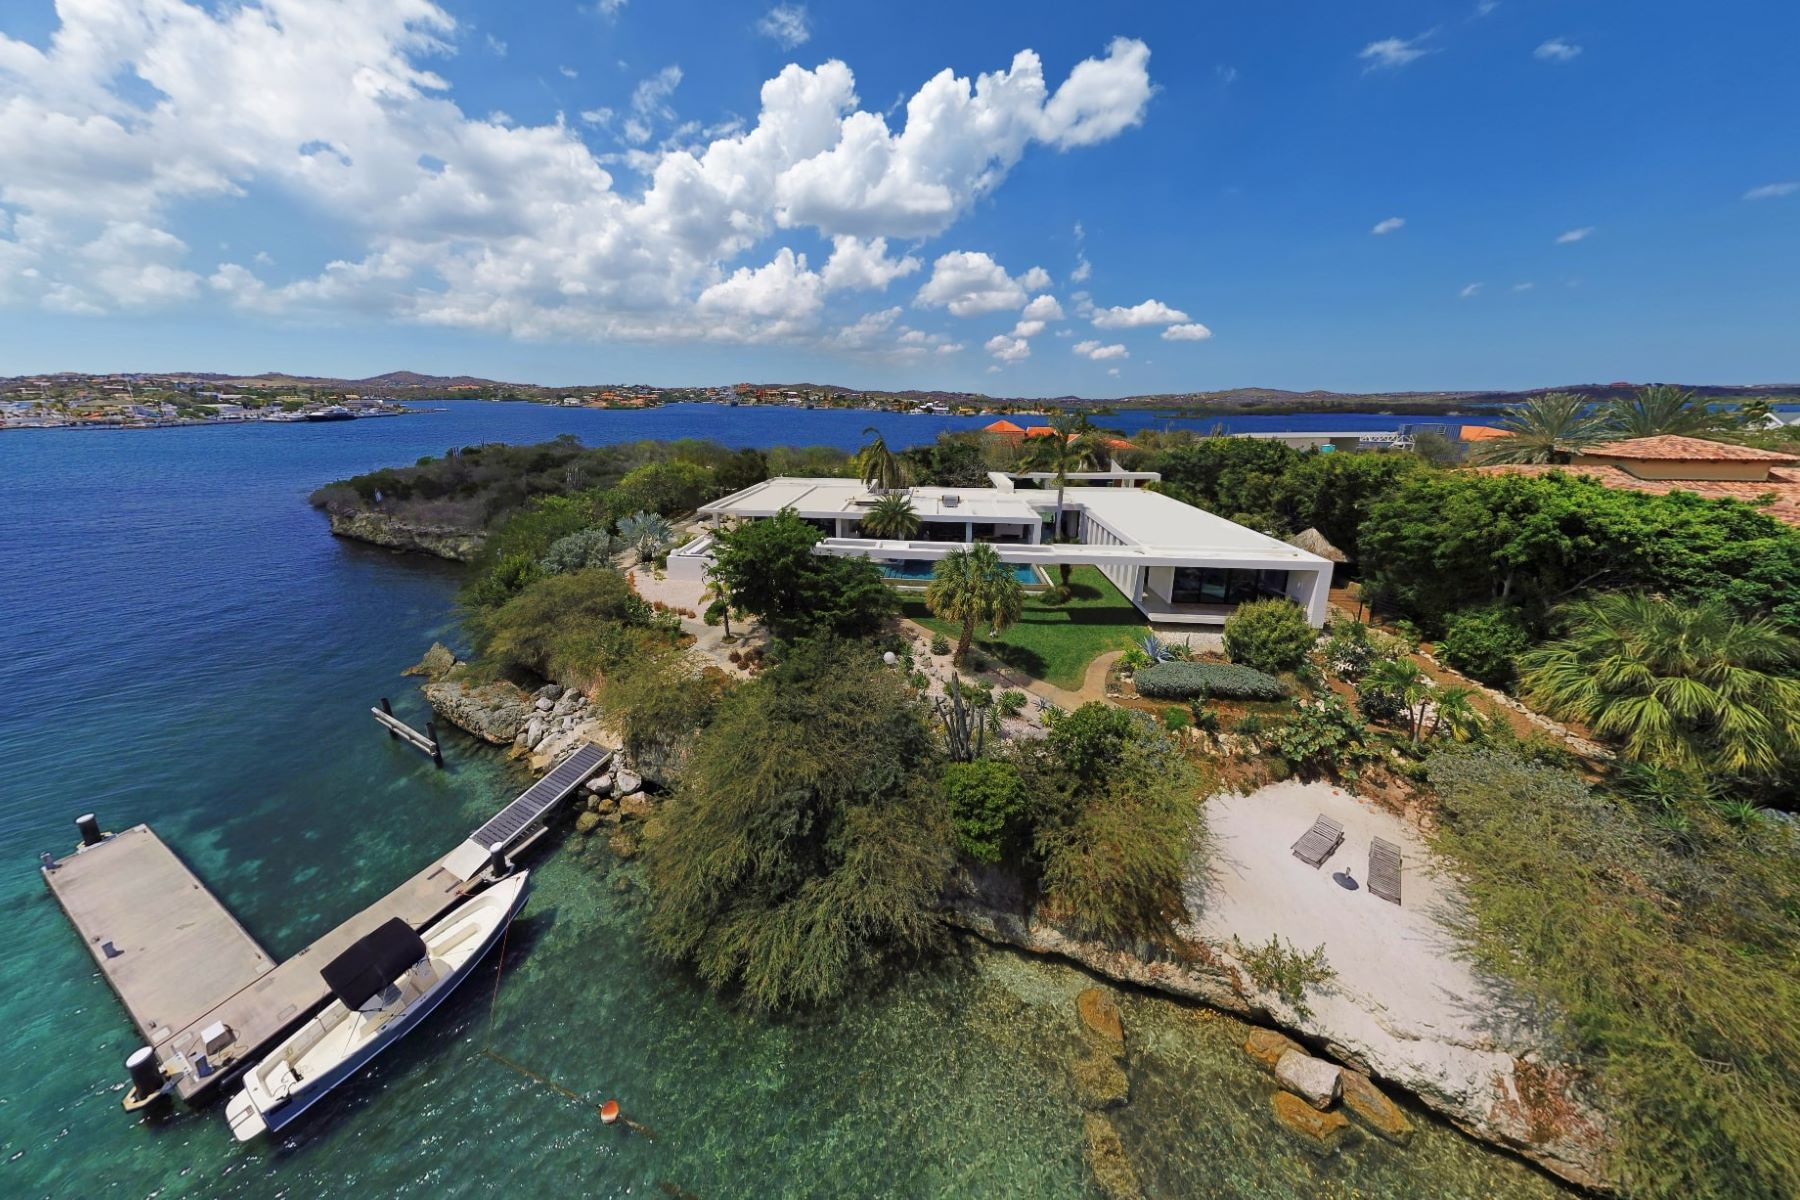 Single Family Home for Sale at Seru Boca Estate Contemporary Beachfront Villa 45 Willemstad, Curacao